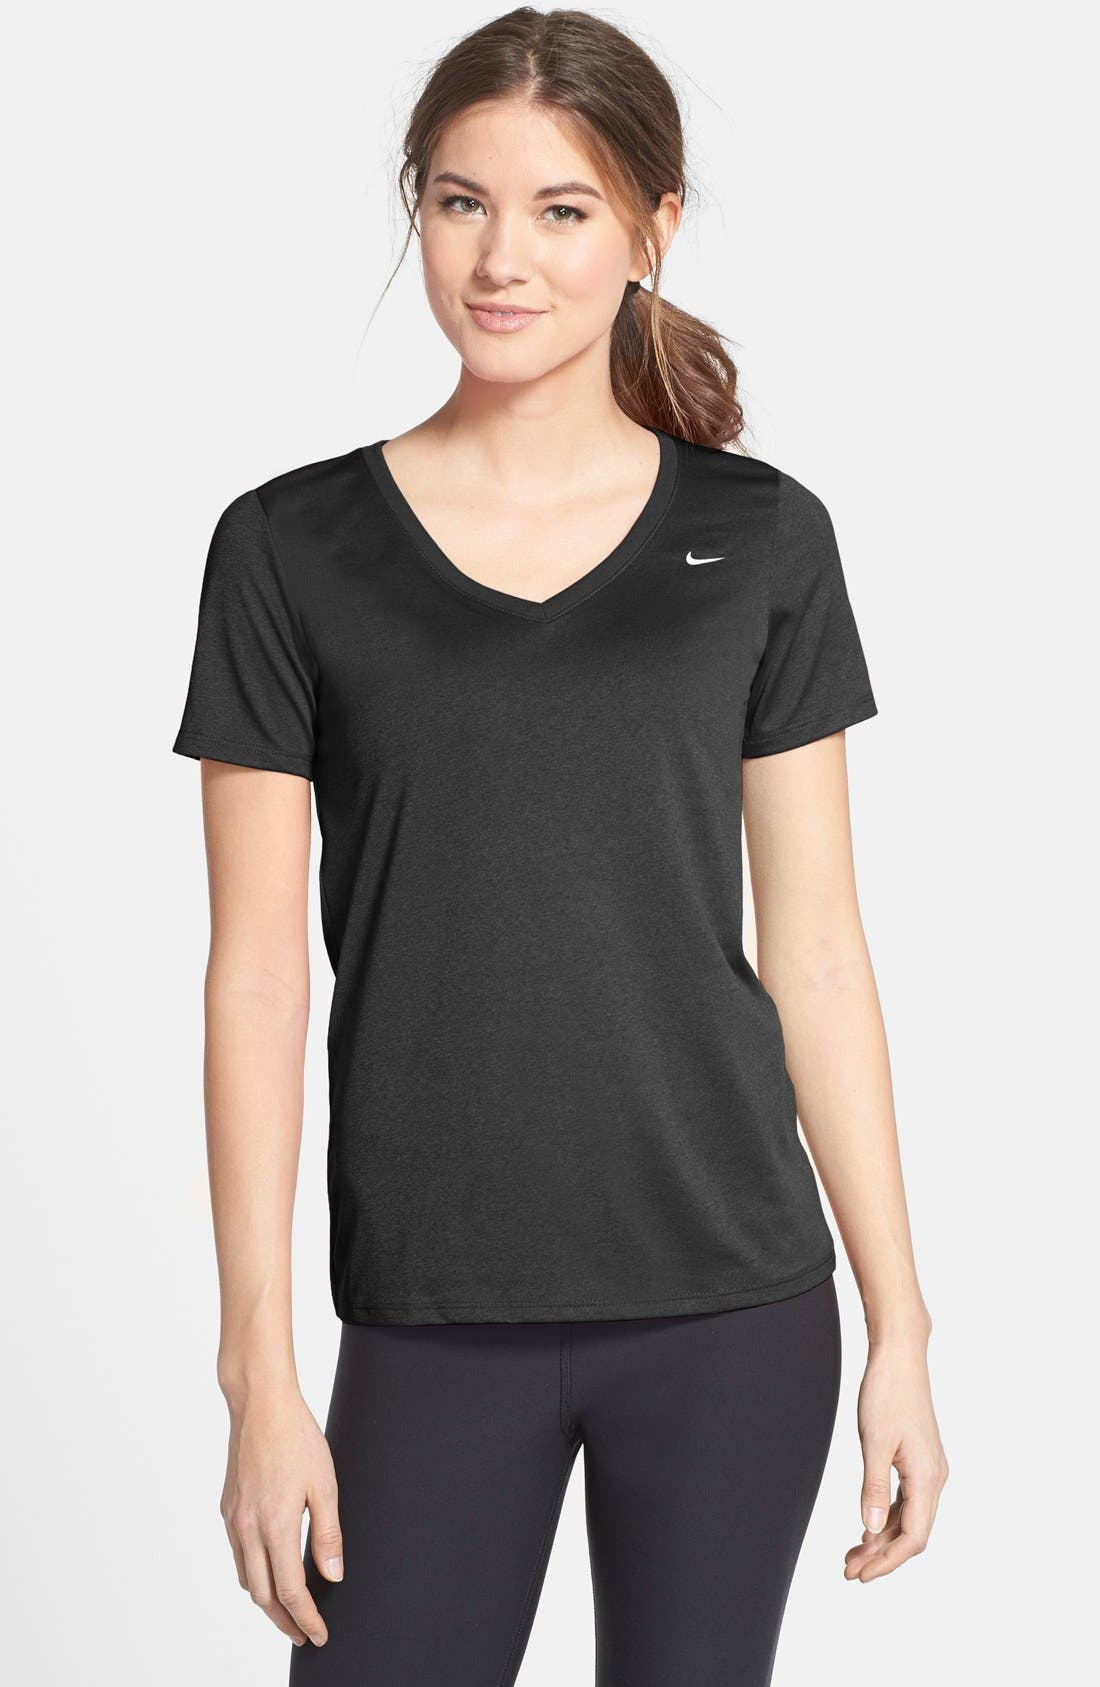 NIKE,                             'Legend 2.0' Short Sleeve V-Neck Tee,                             Main thumbnail 1, color,                             010